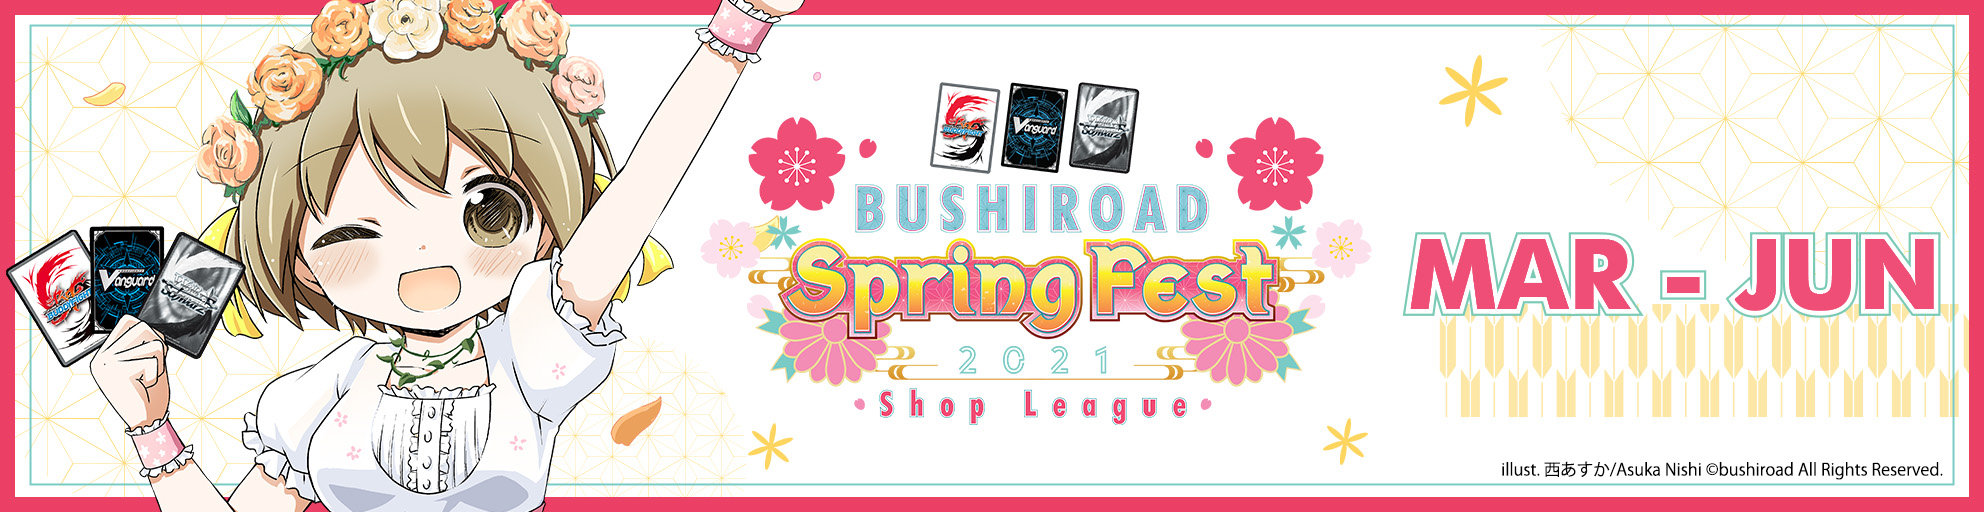 Bushiroad_Spring_Fest_2021_Shop_League